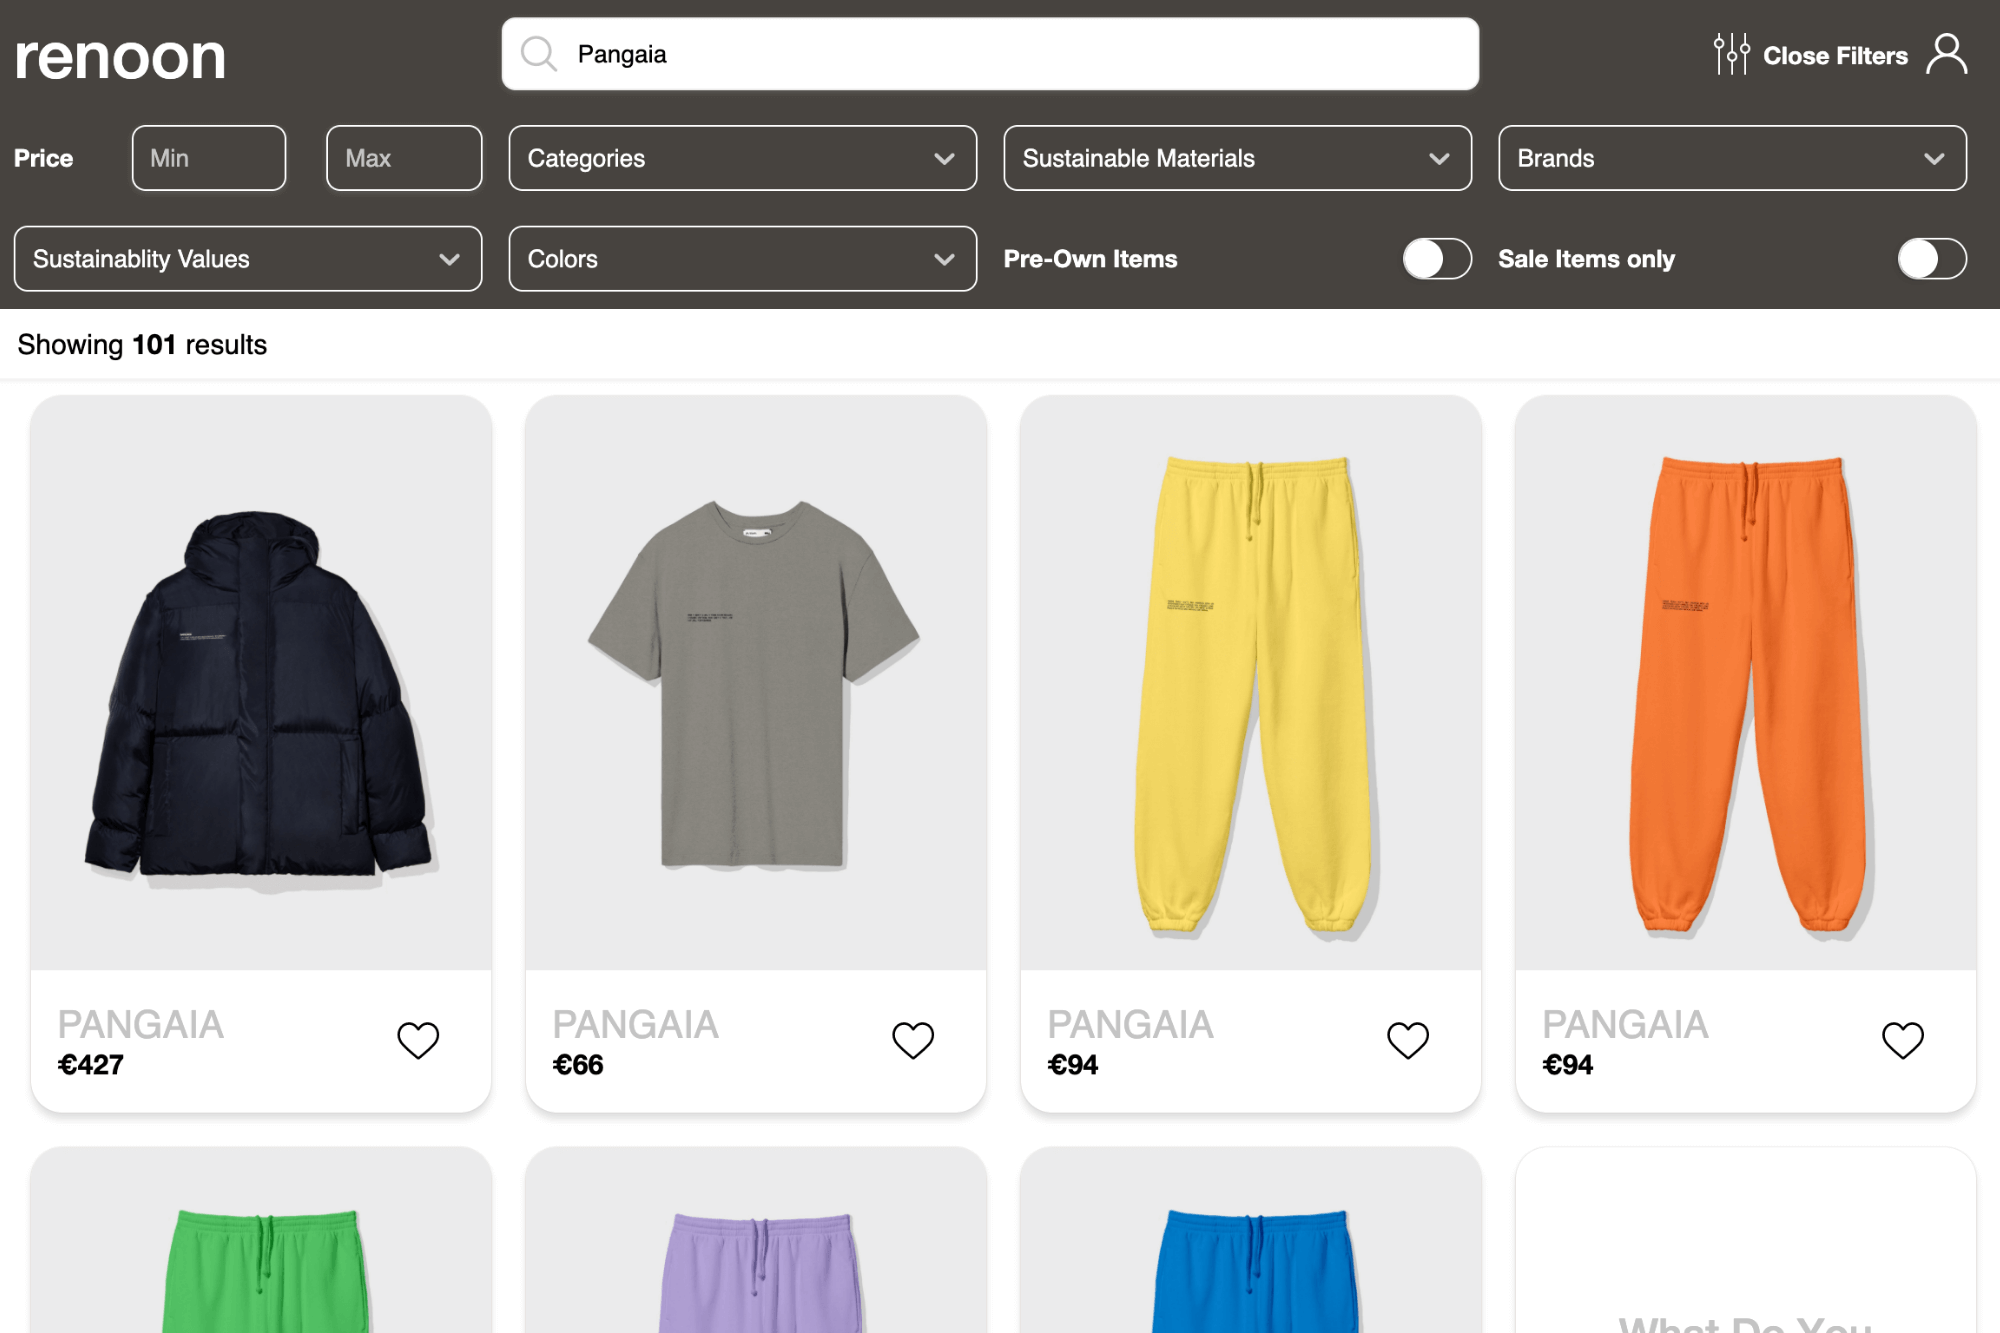 Where to find Pangaia's sustainable must-have outfit?